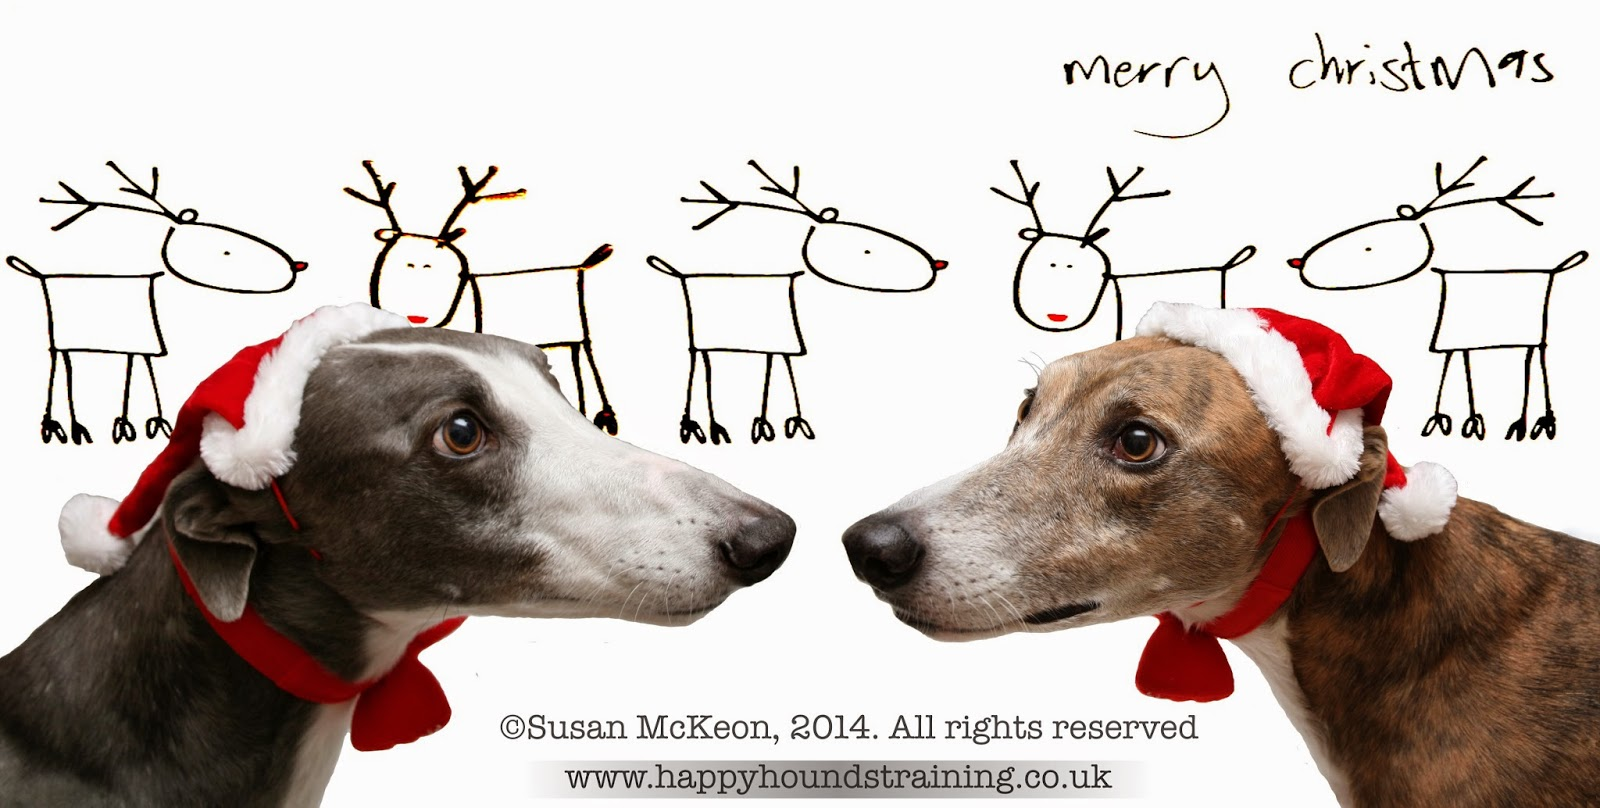 Image@ Two greyhounds wearing Christmas hats.